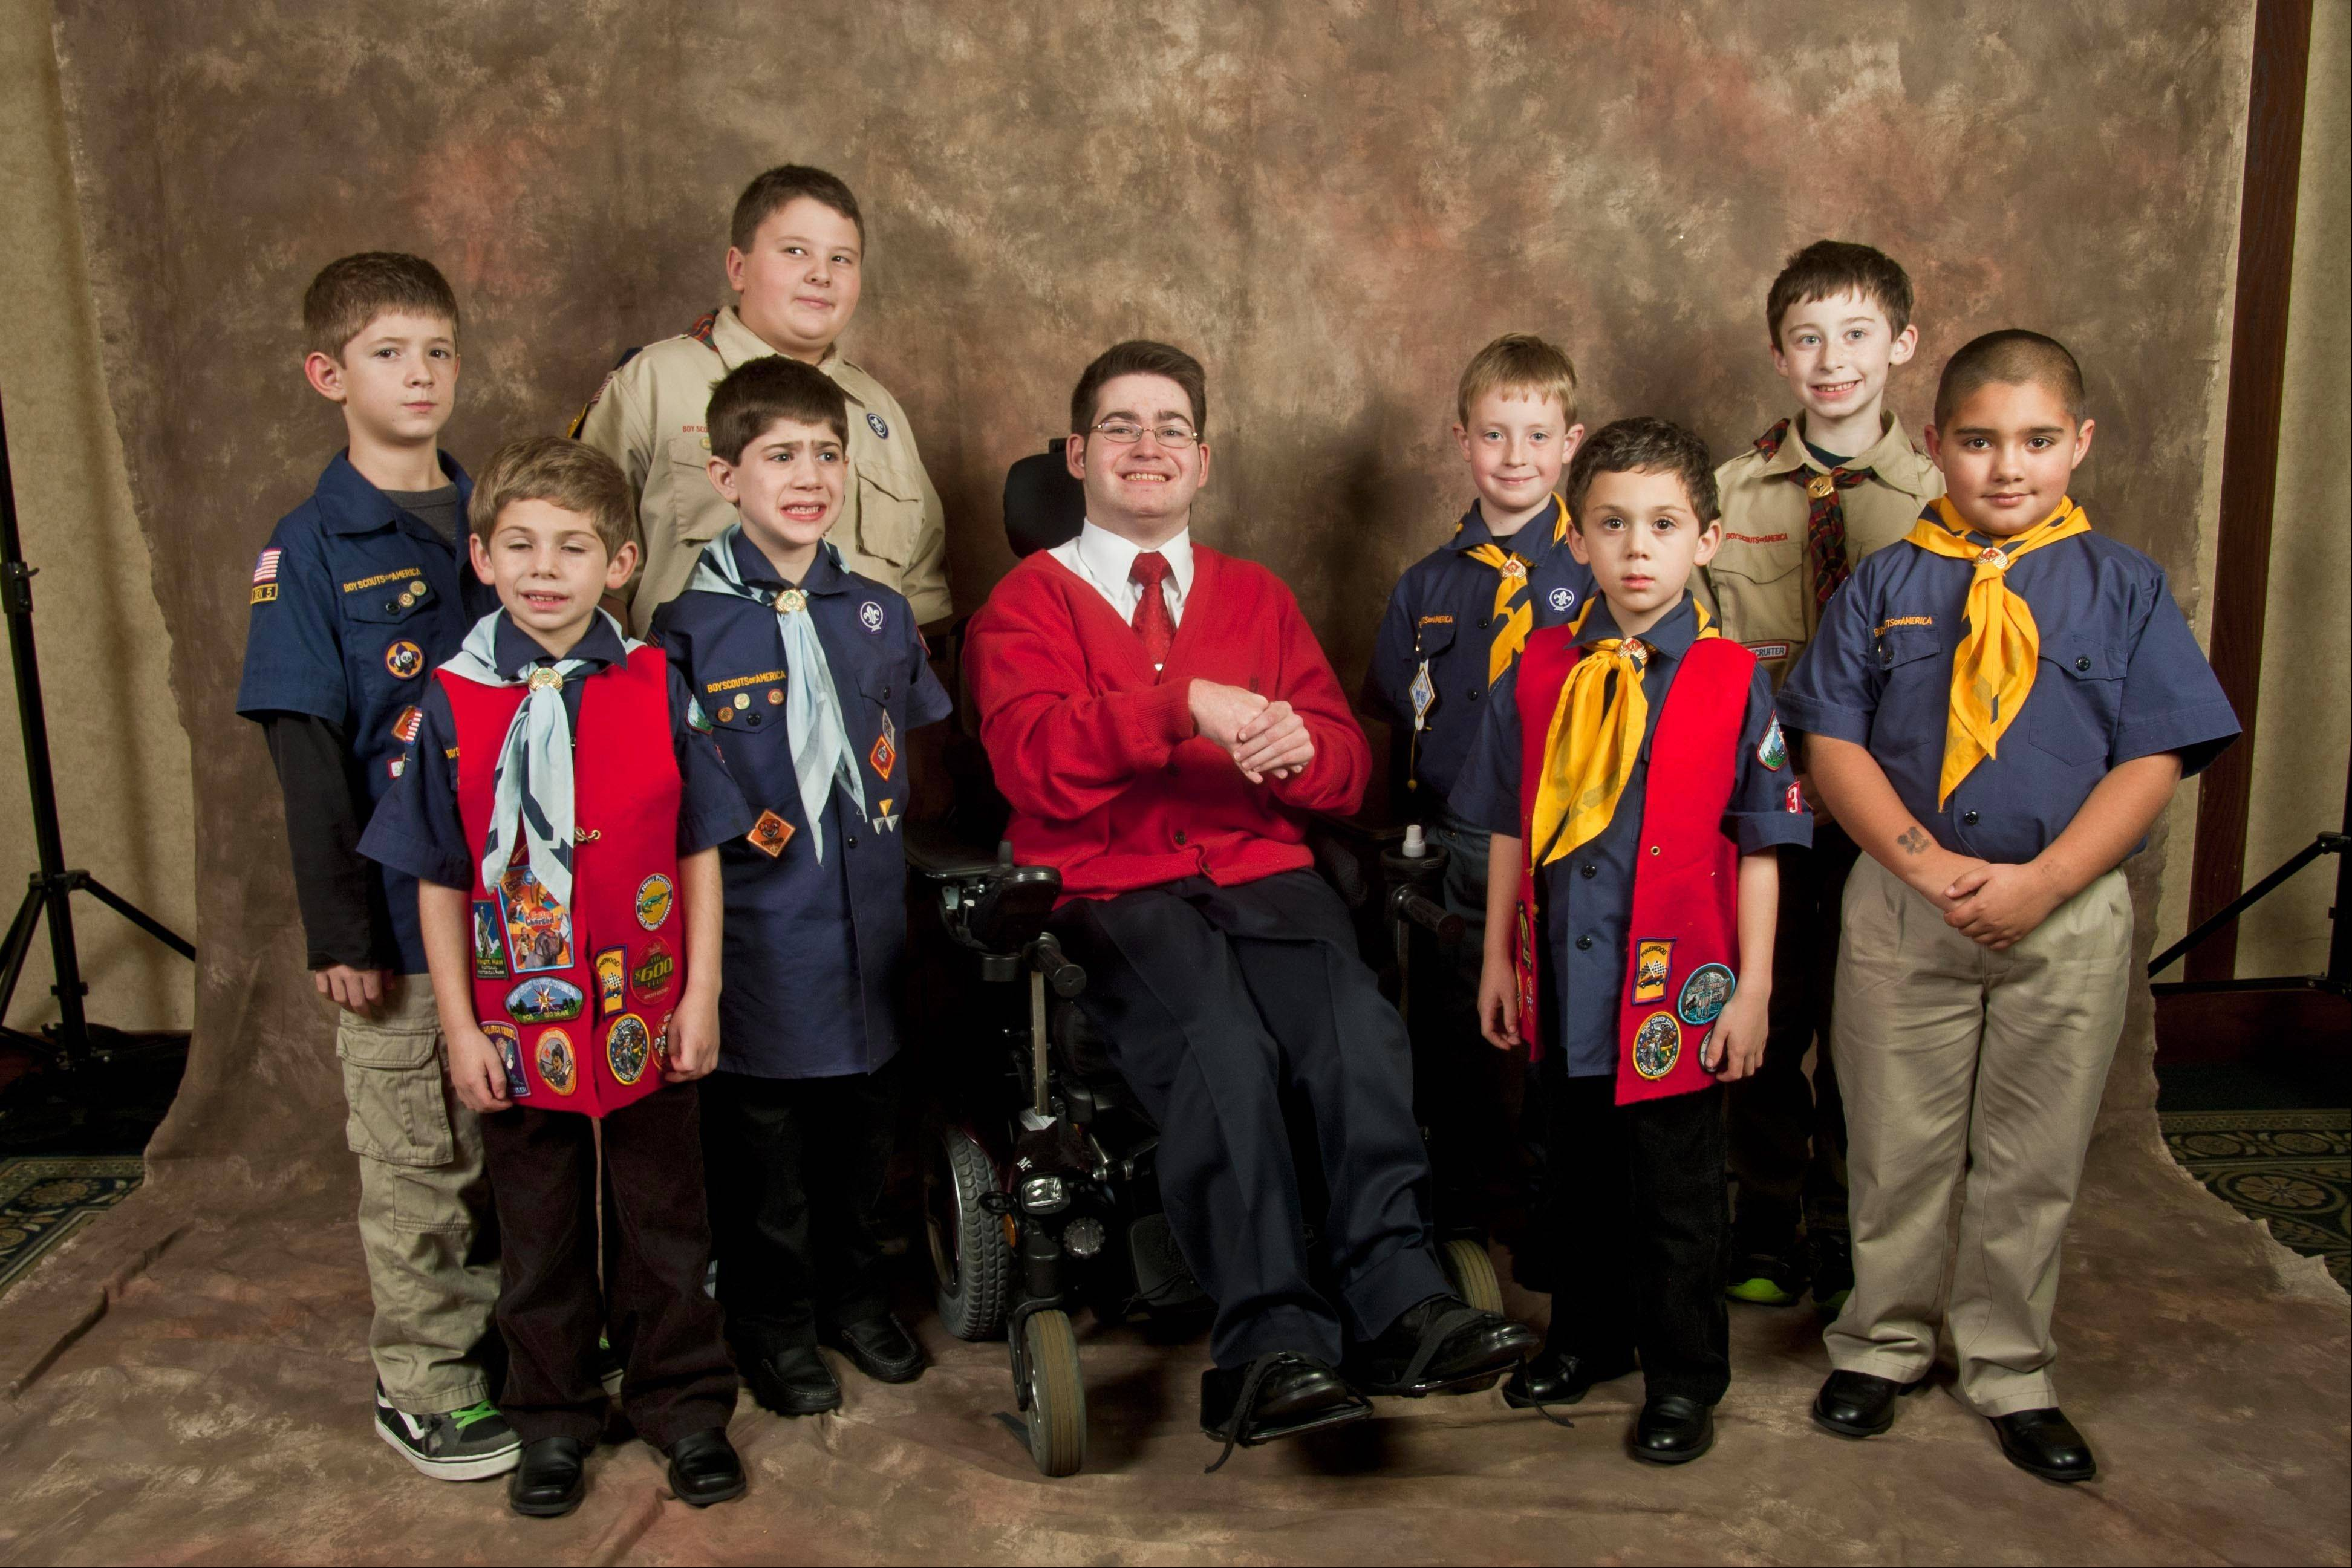 Members of Cub Scout Pack No. 36 pose with Avi Samuels, middle. The Scouts and Avi were co-winners of the Youth Volunteer award.